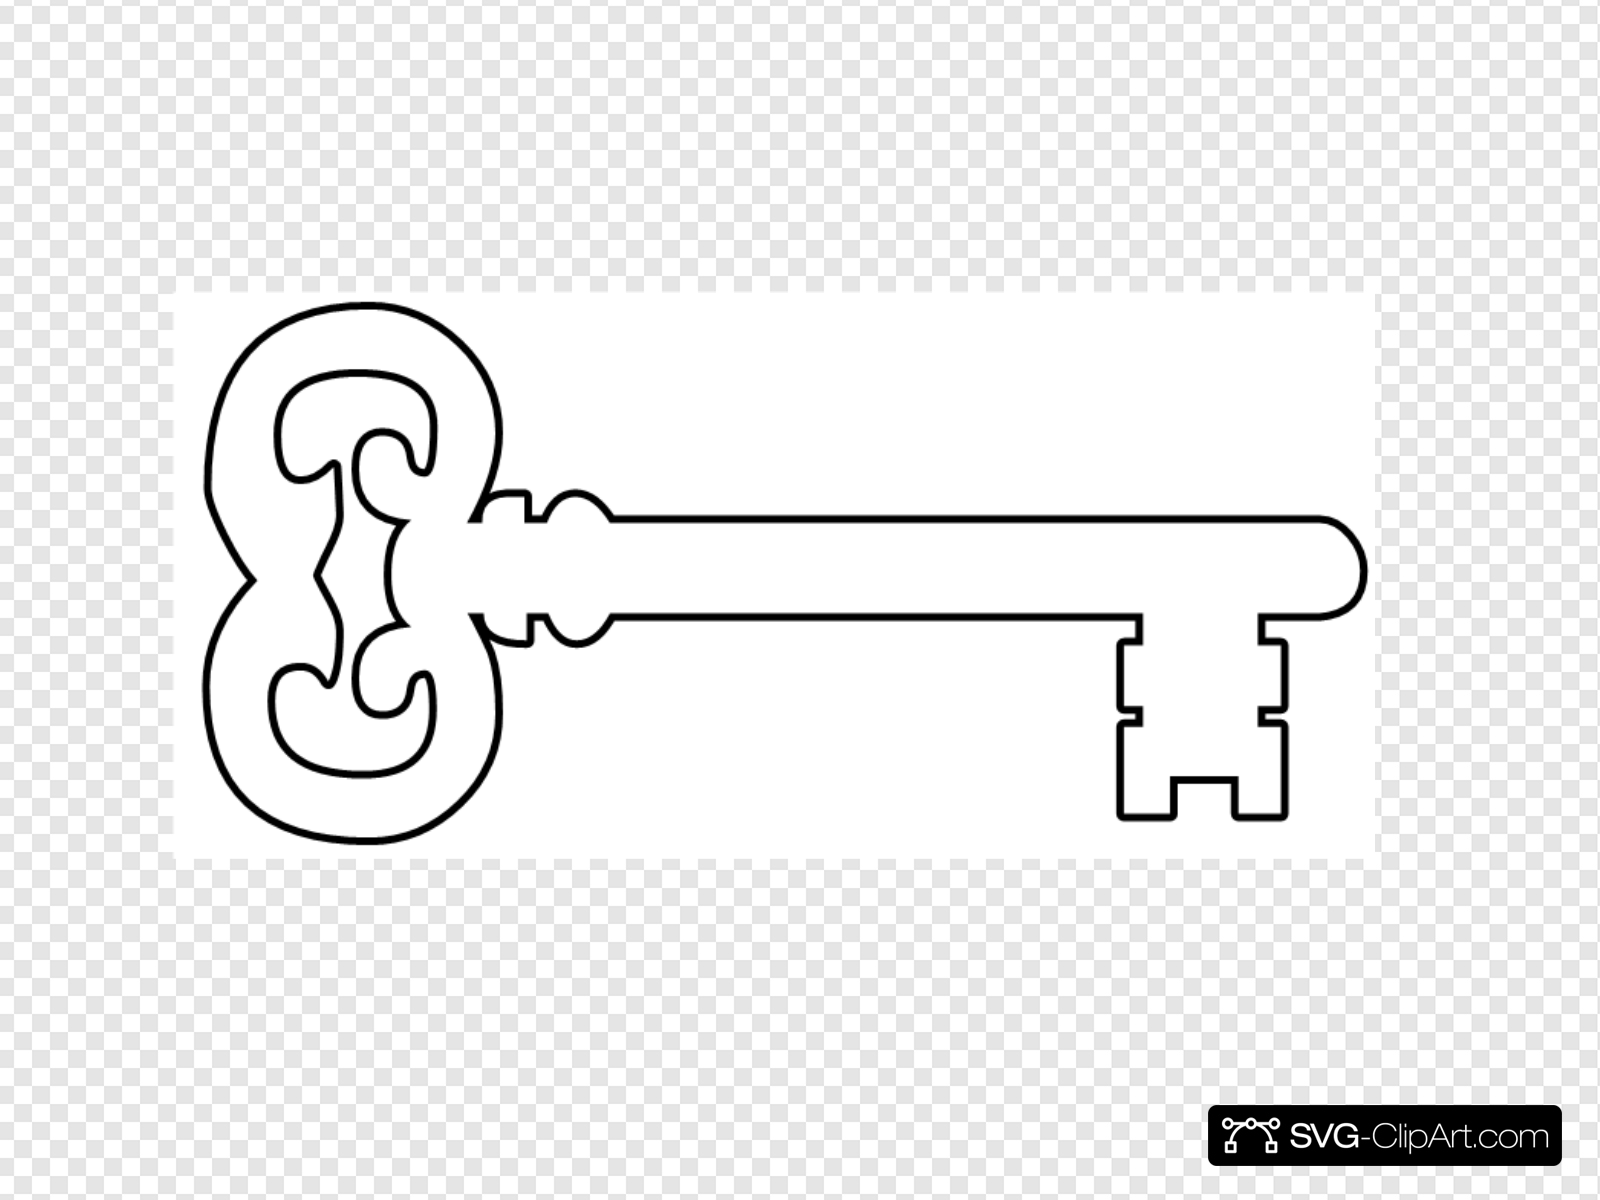 Key Outline Clip art, Icon and SVG.